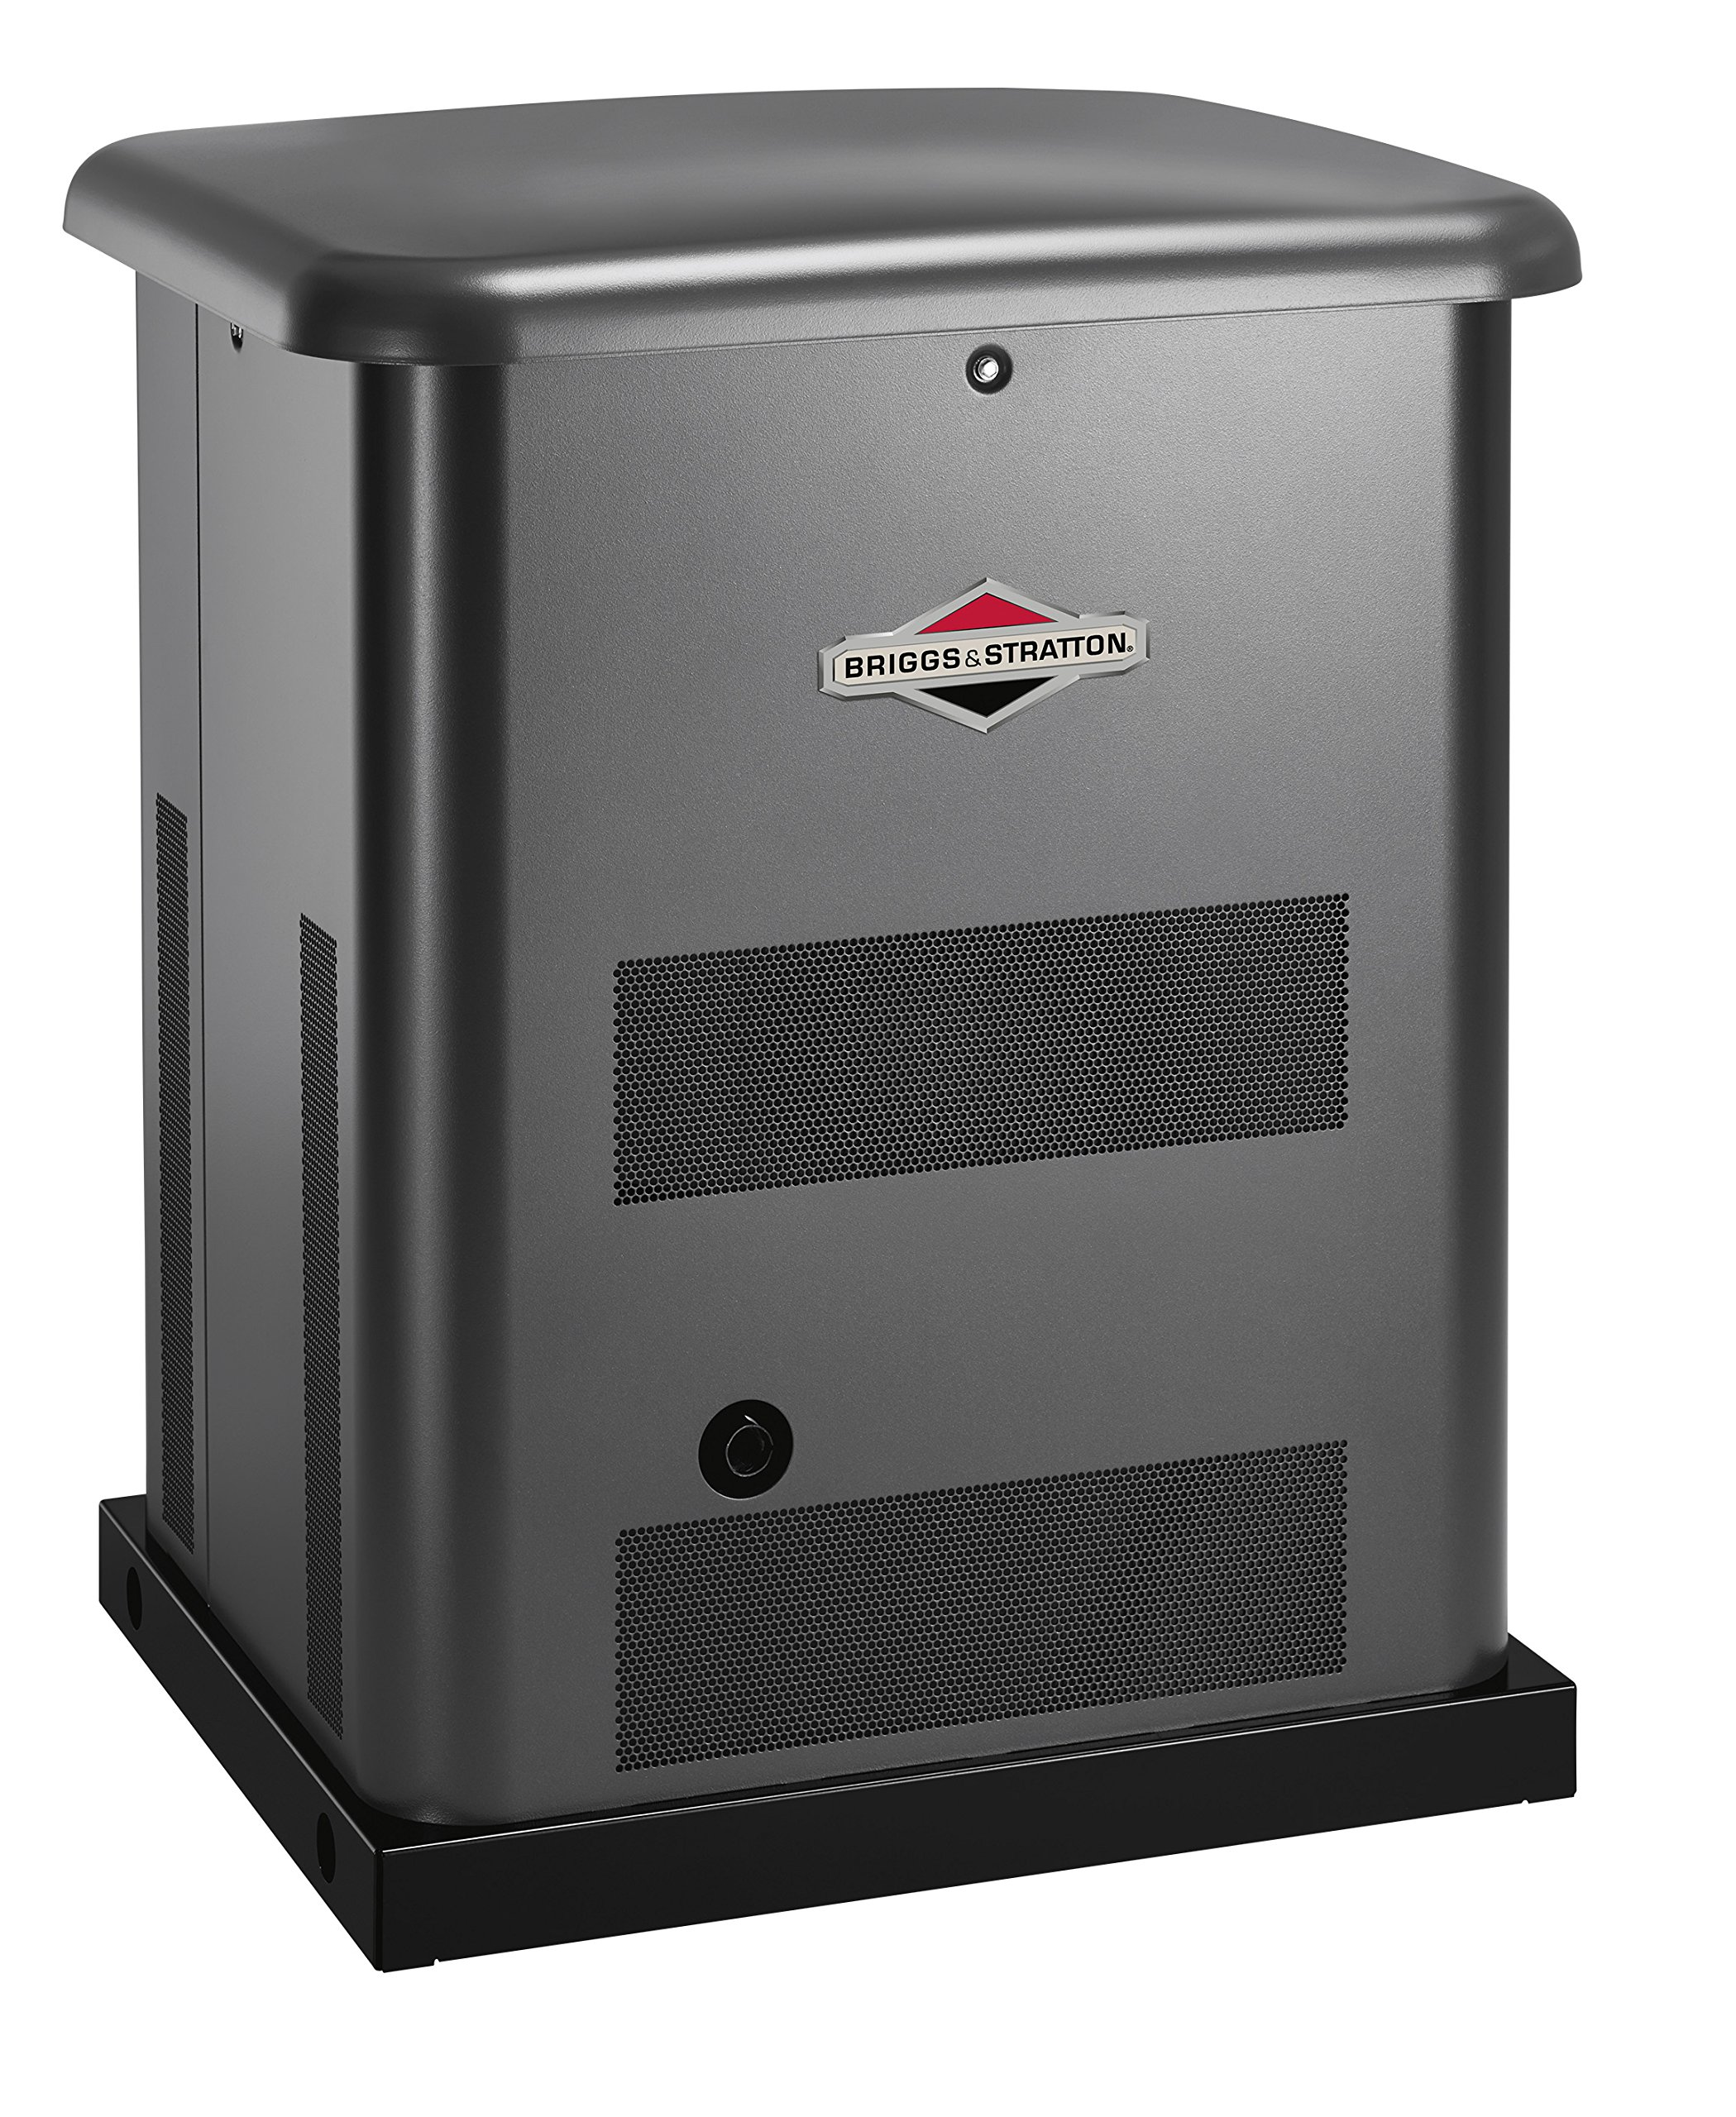 Briggs & Stratton 40449 10000-watt Home Standby Generator System with 100-Amp Automatic Transfer Switch